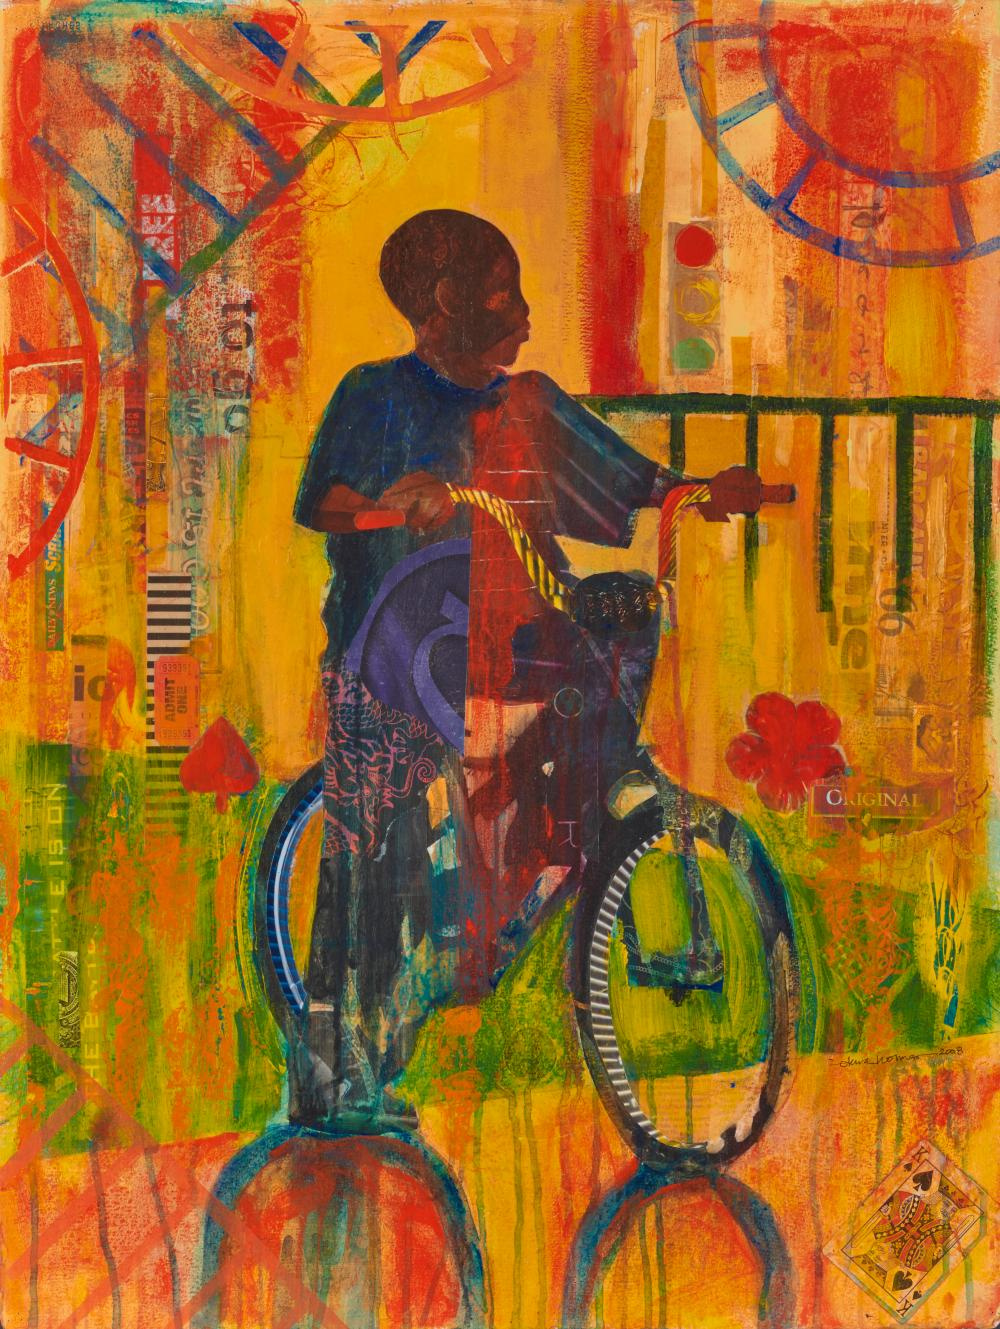 EKUA HOLMES, (American, b. 1955), Let the Games Begin, 2008, collage and acrylic on paper, 30 x 22 1/2 in., frame: 36 1/2 x 29 1/4 in.